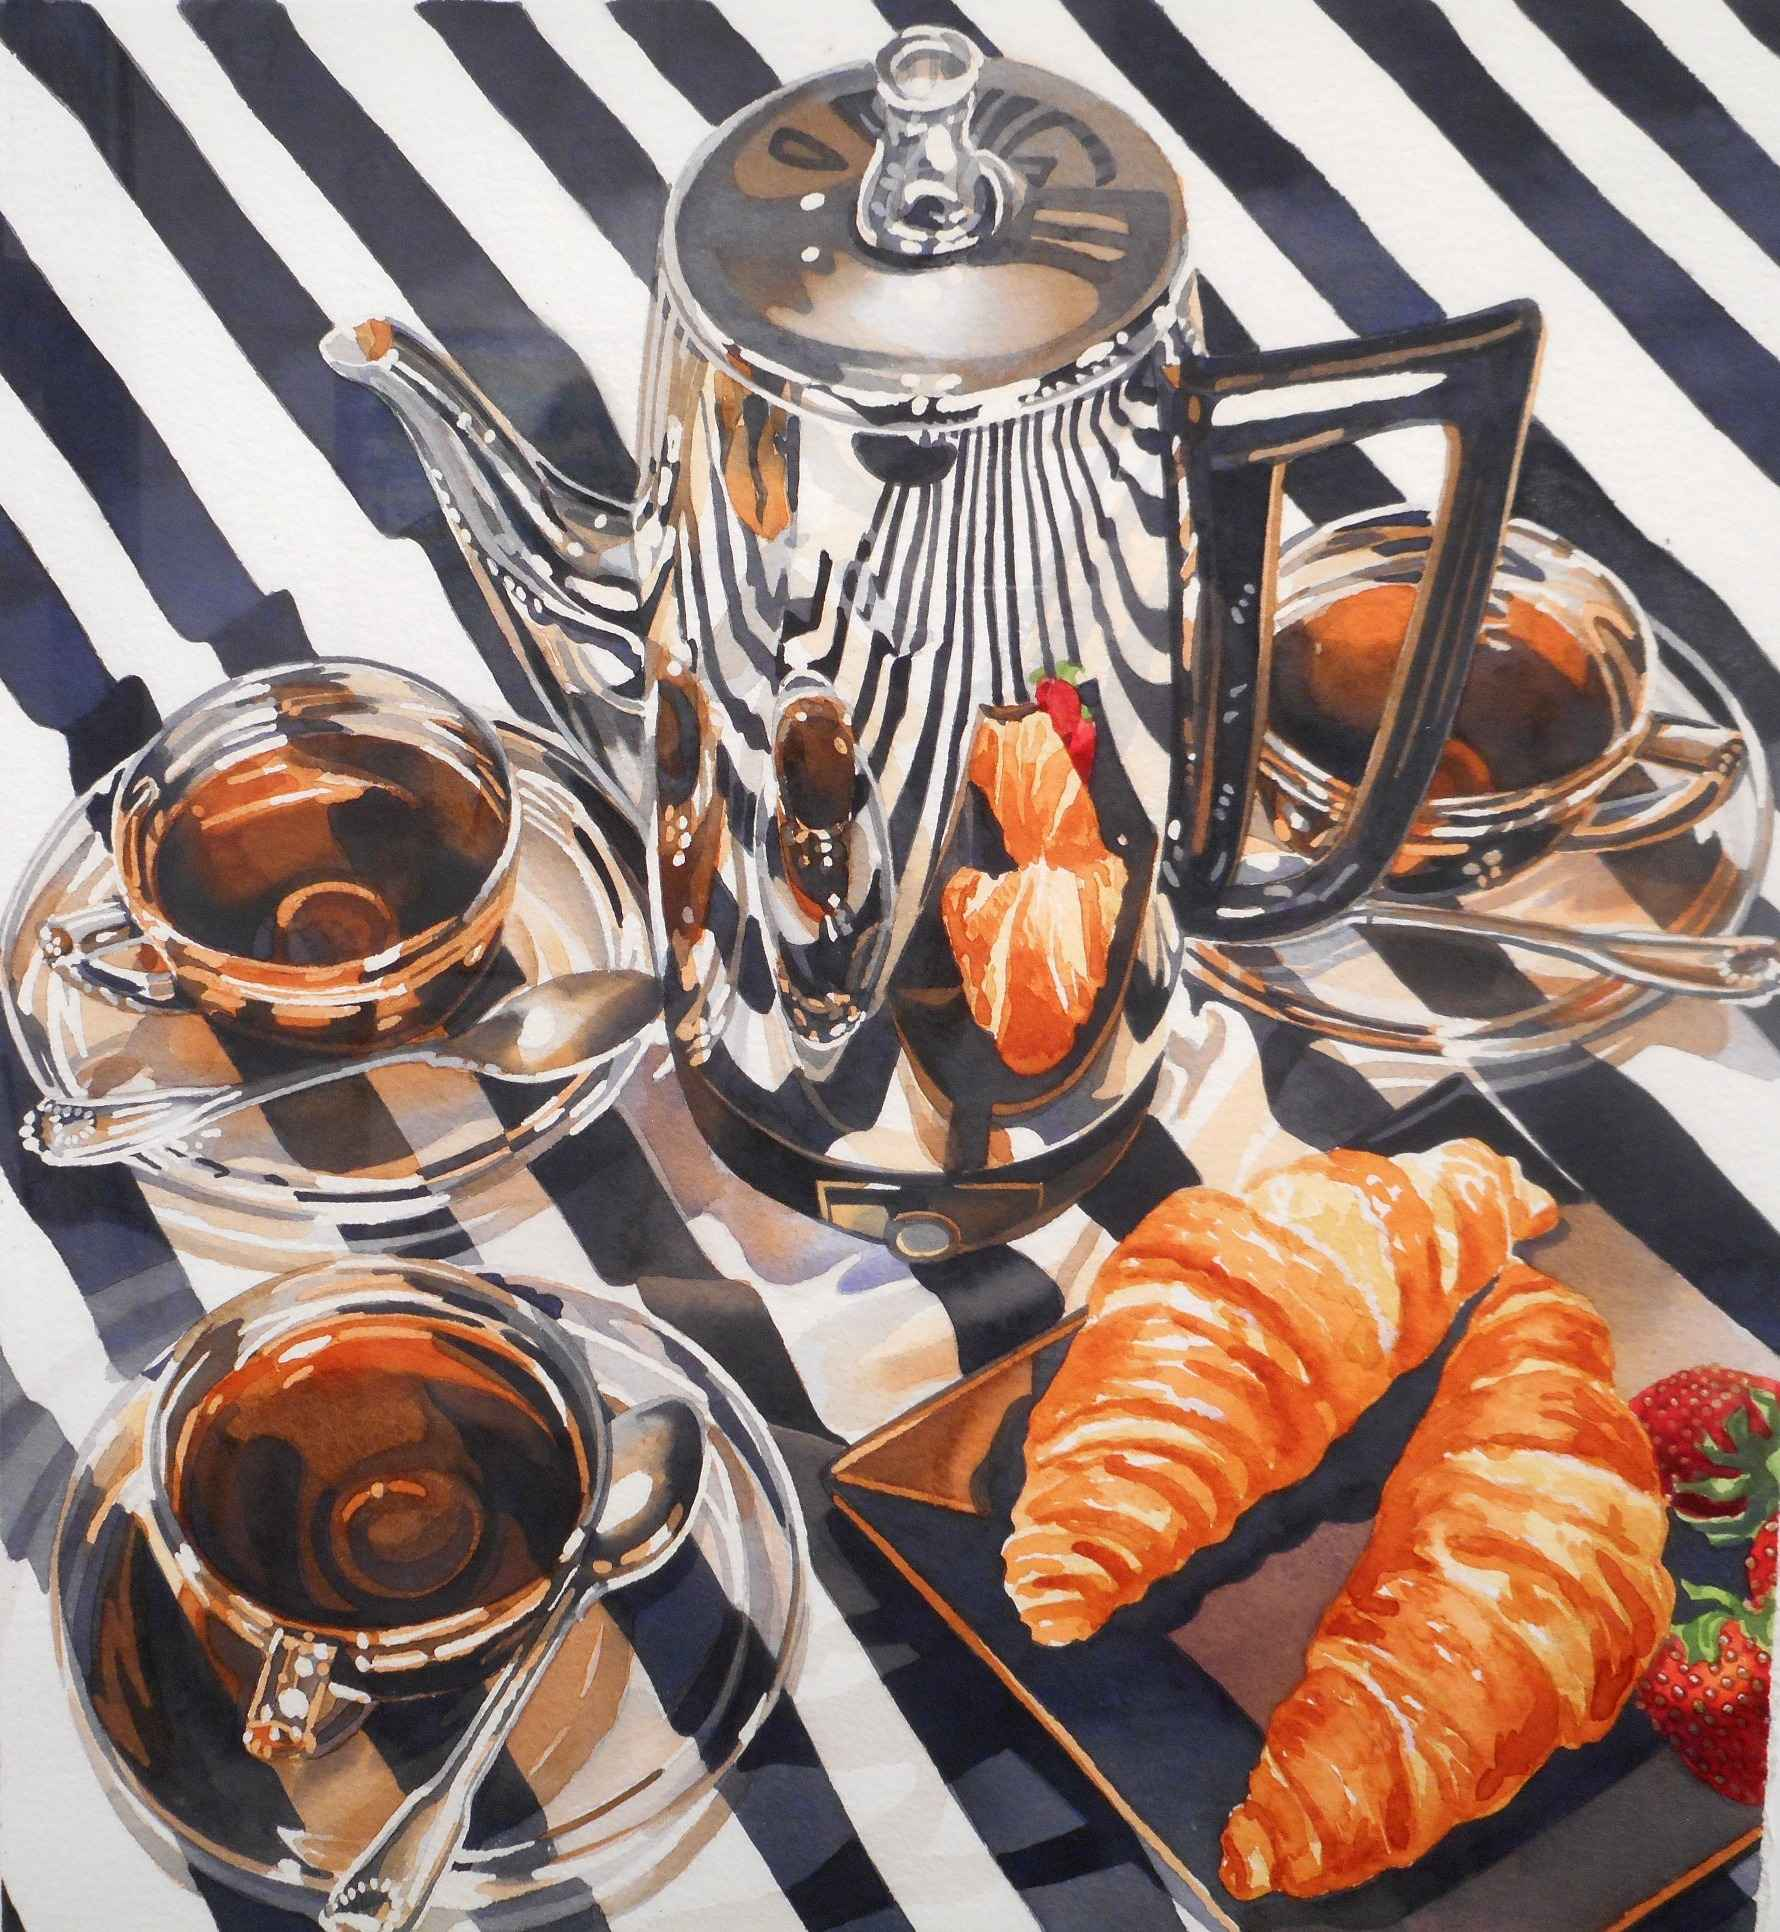 Les Croissant by  Rodney Moser - Masterpiece Online